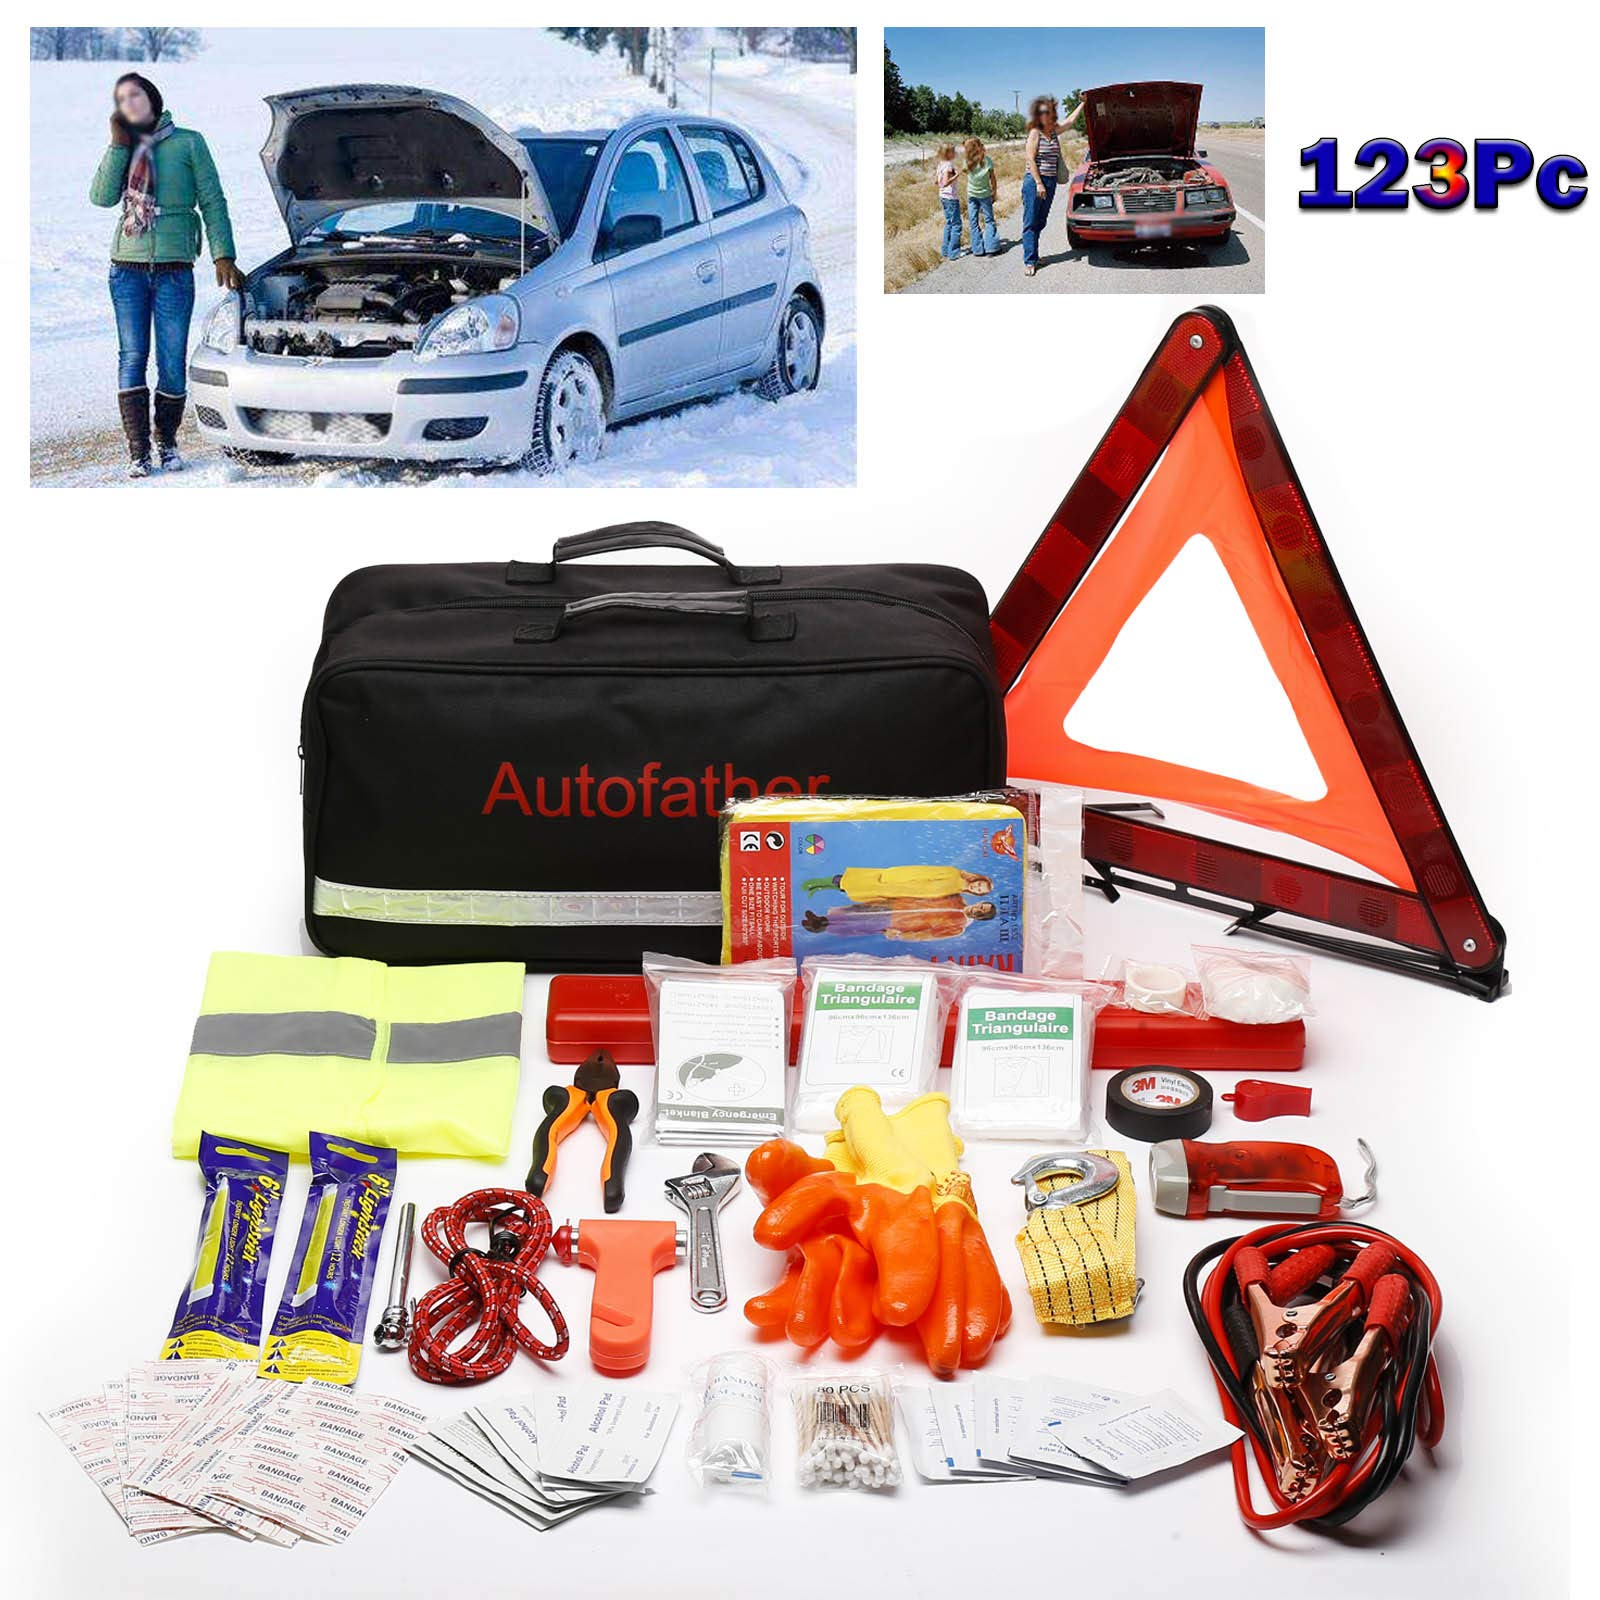 123-Piece Roadside Assistance Emergency Safety Kit with Jumper Cable Heavy Duty Booster Cables for Car Battery Warning Triangle 3T Tow Strap First Aid Kit Perfect Gift for Family Girlfriend New Driver by Bowoshen